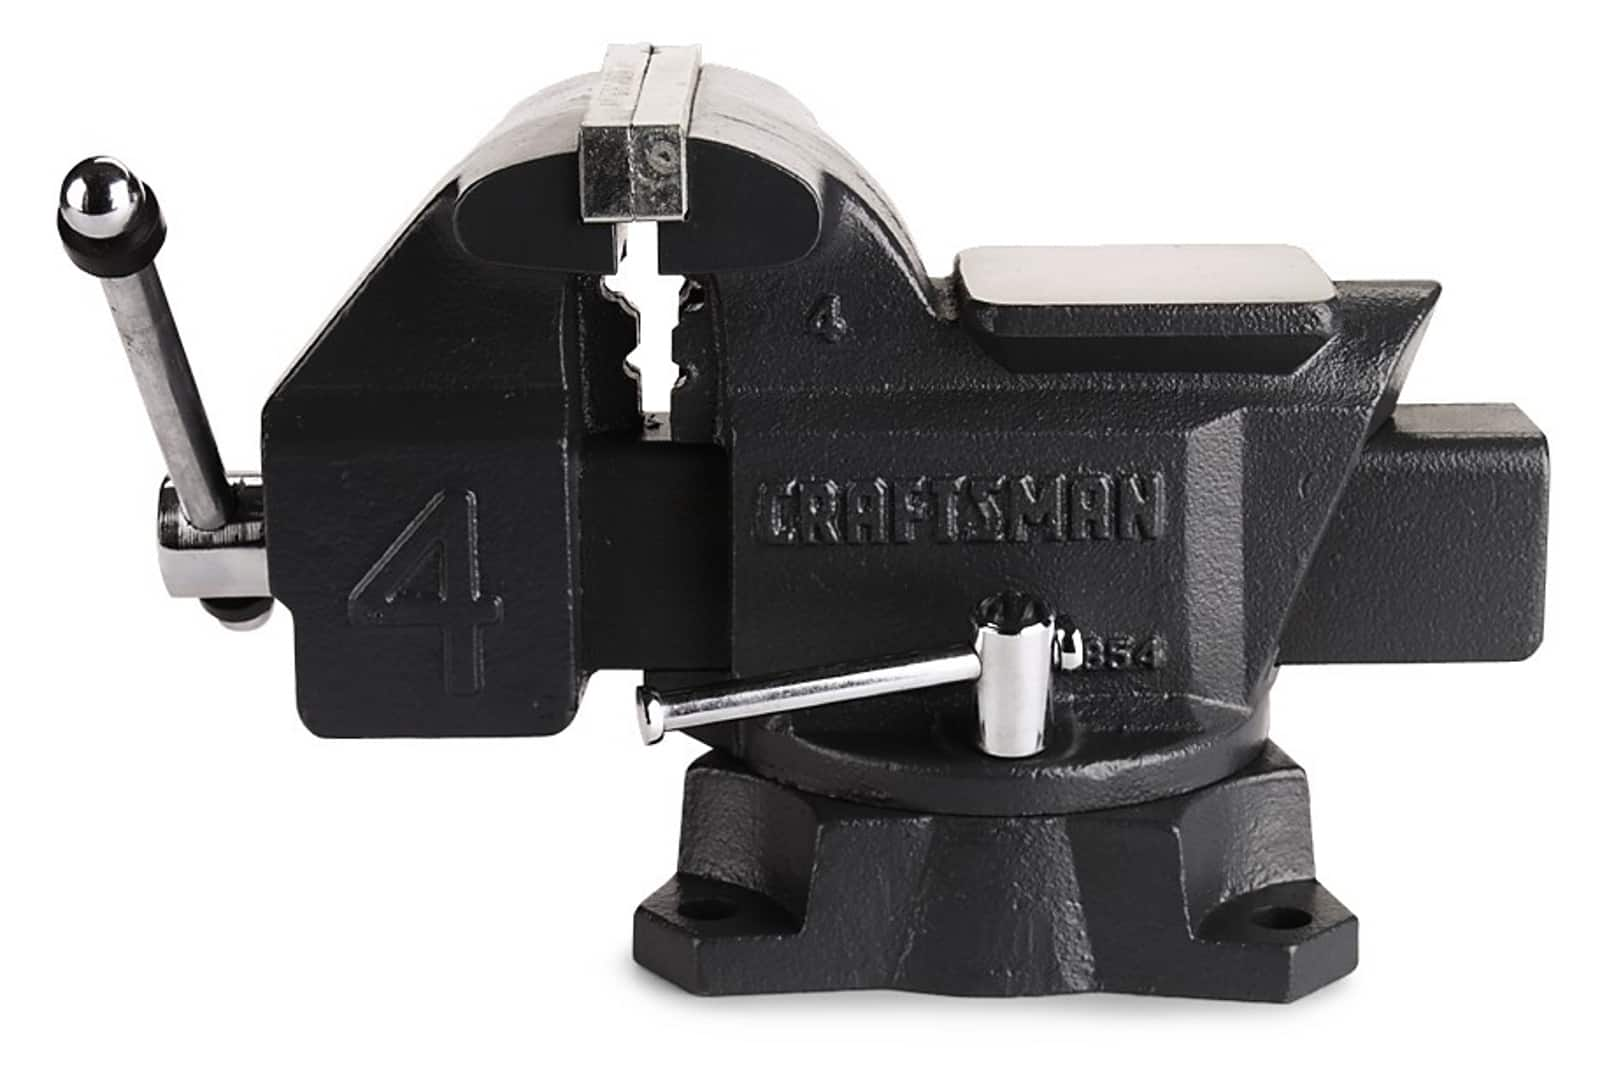 Craftsman 4 in. Bench Vise $29.99 (50% off), Free store pick up or free shipping with 94 cent filler